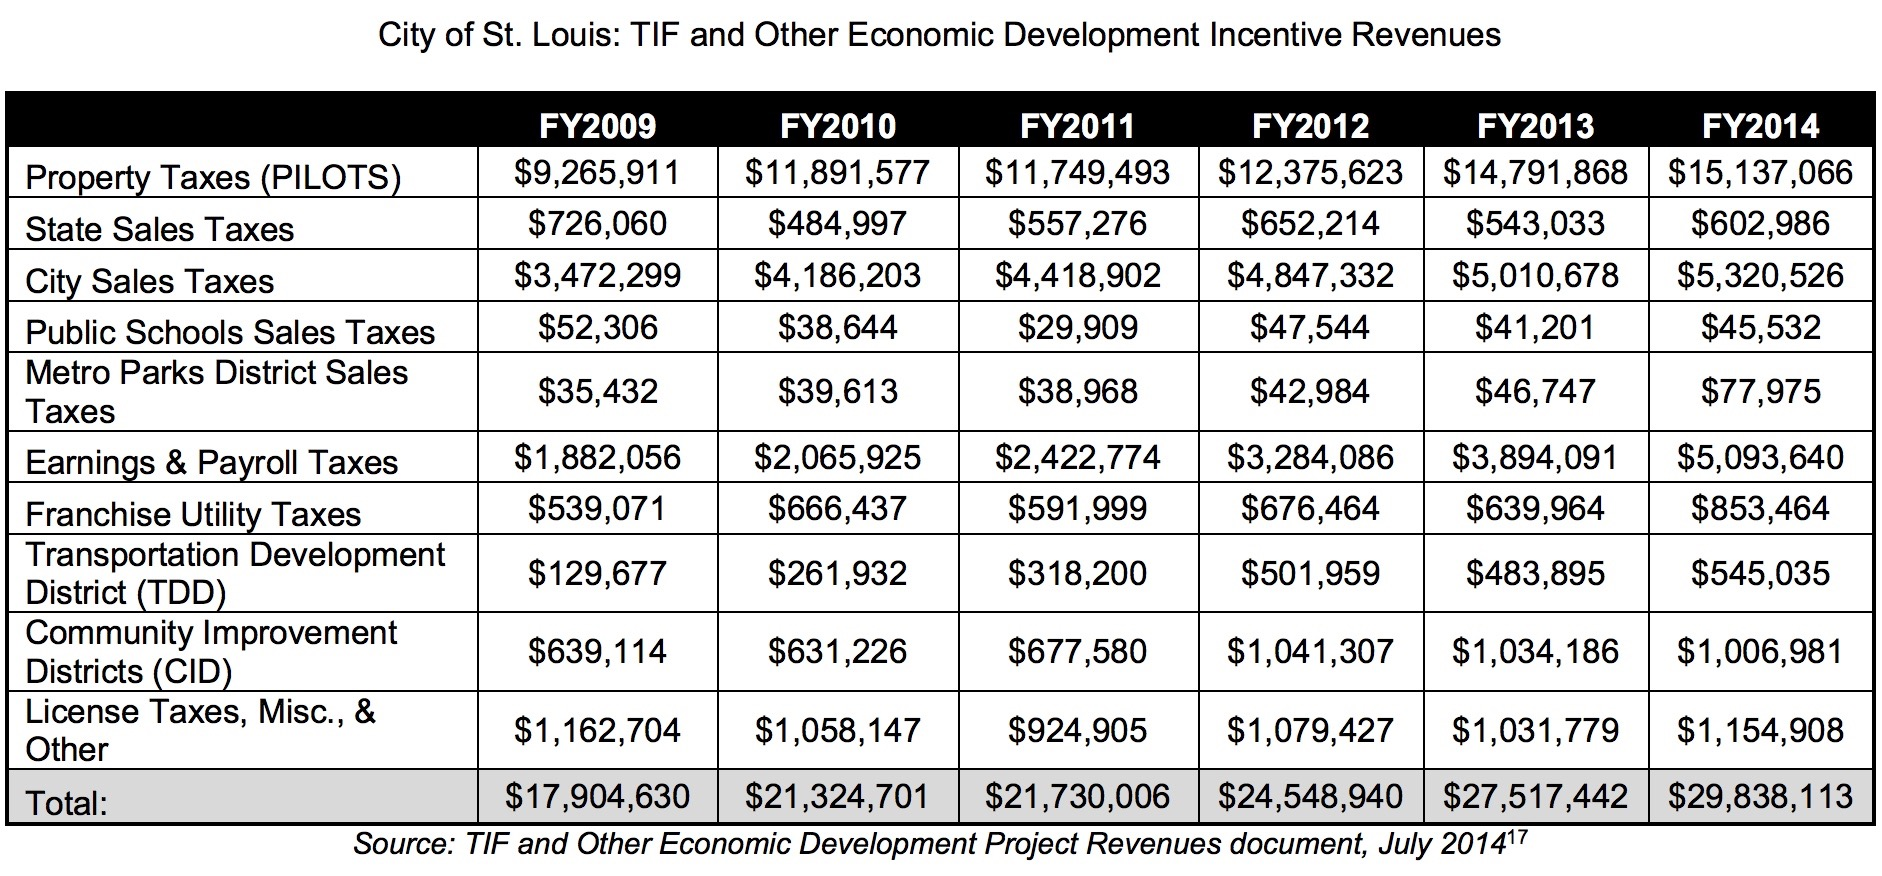 STL City TIF and incentive revenues